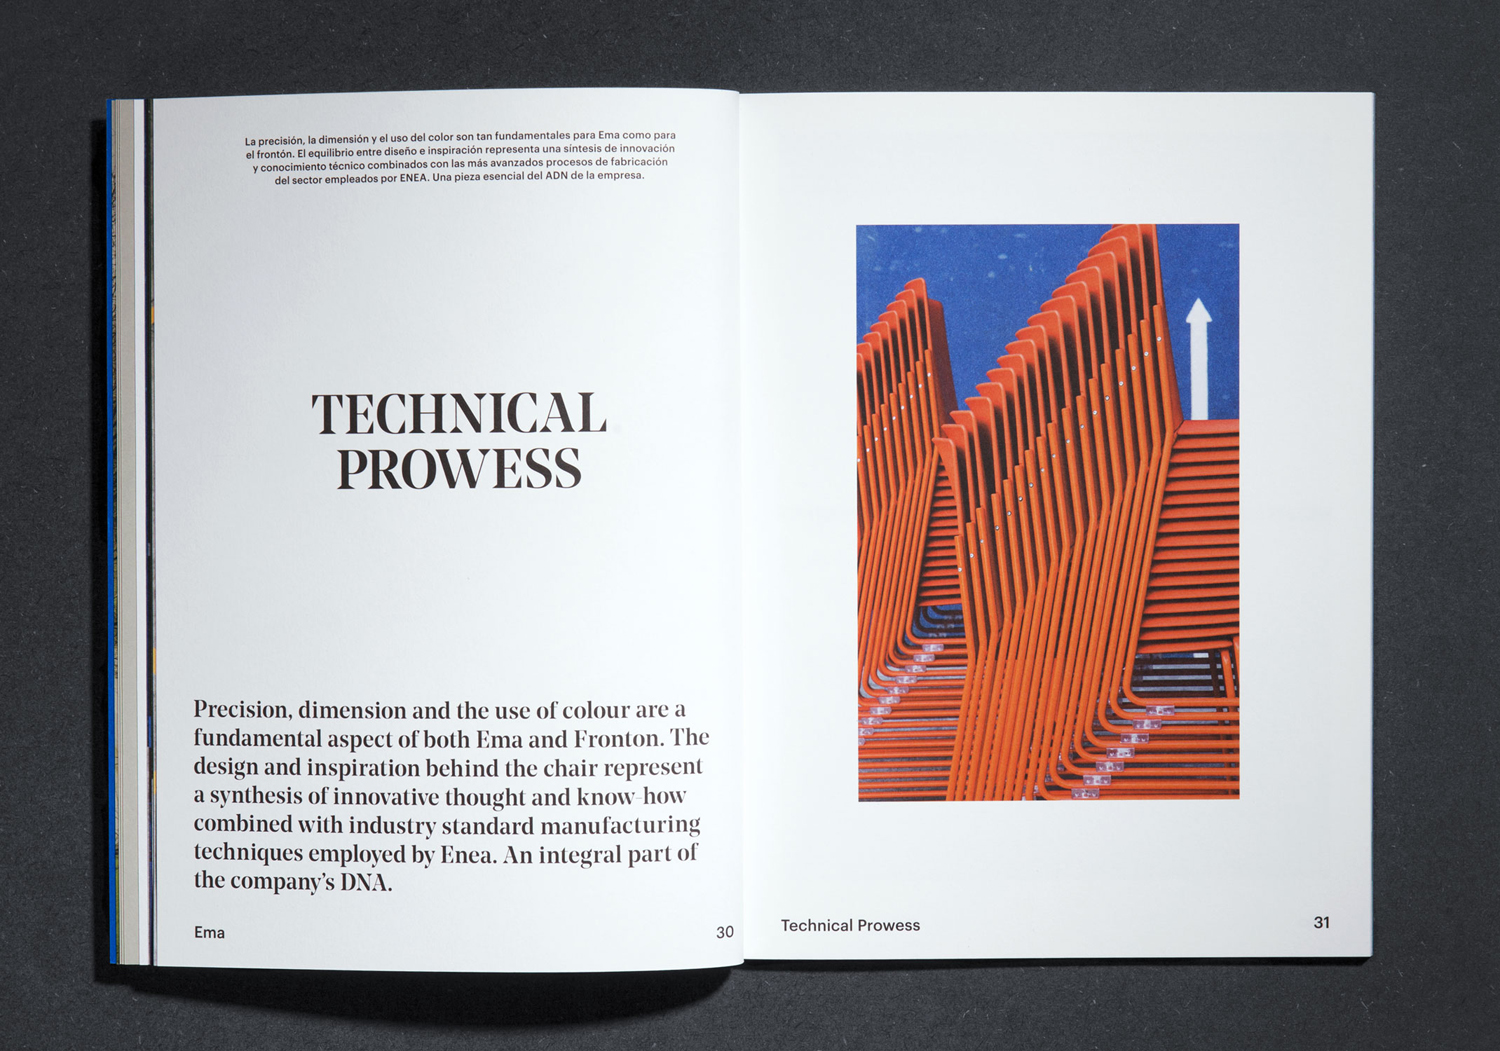 EMA product brochure for furniture design and manufacturing business Enea designed by Clase bcn